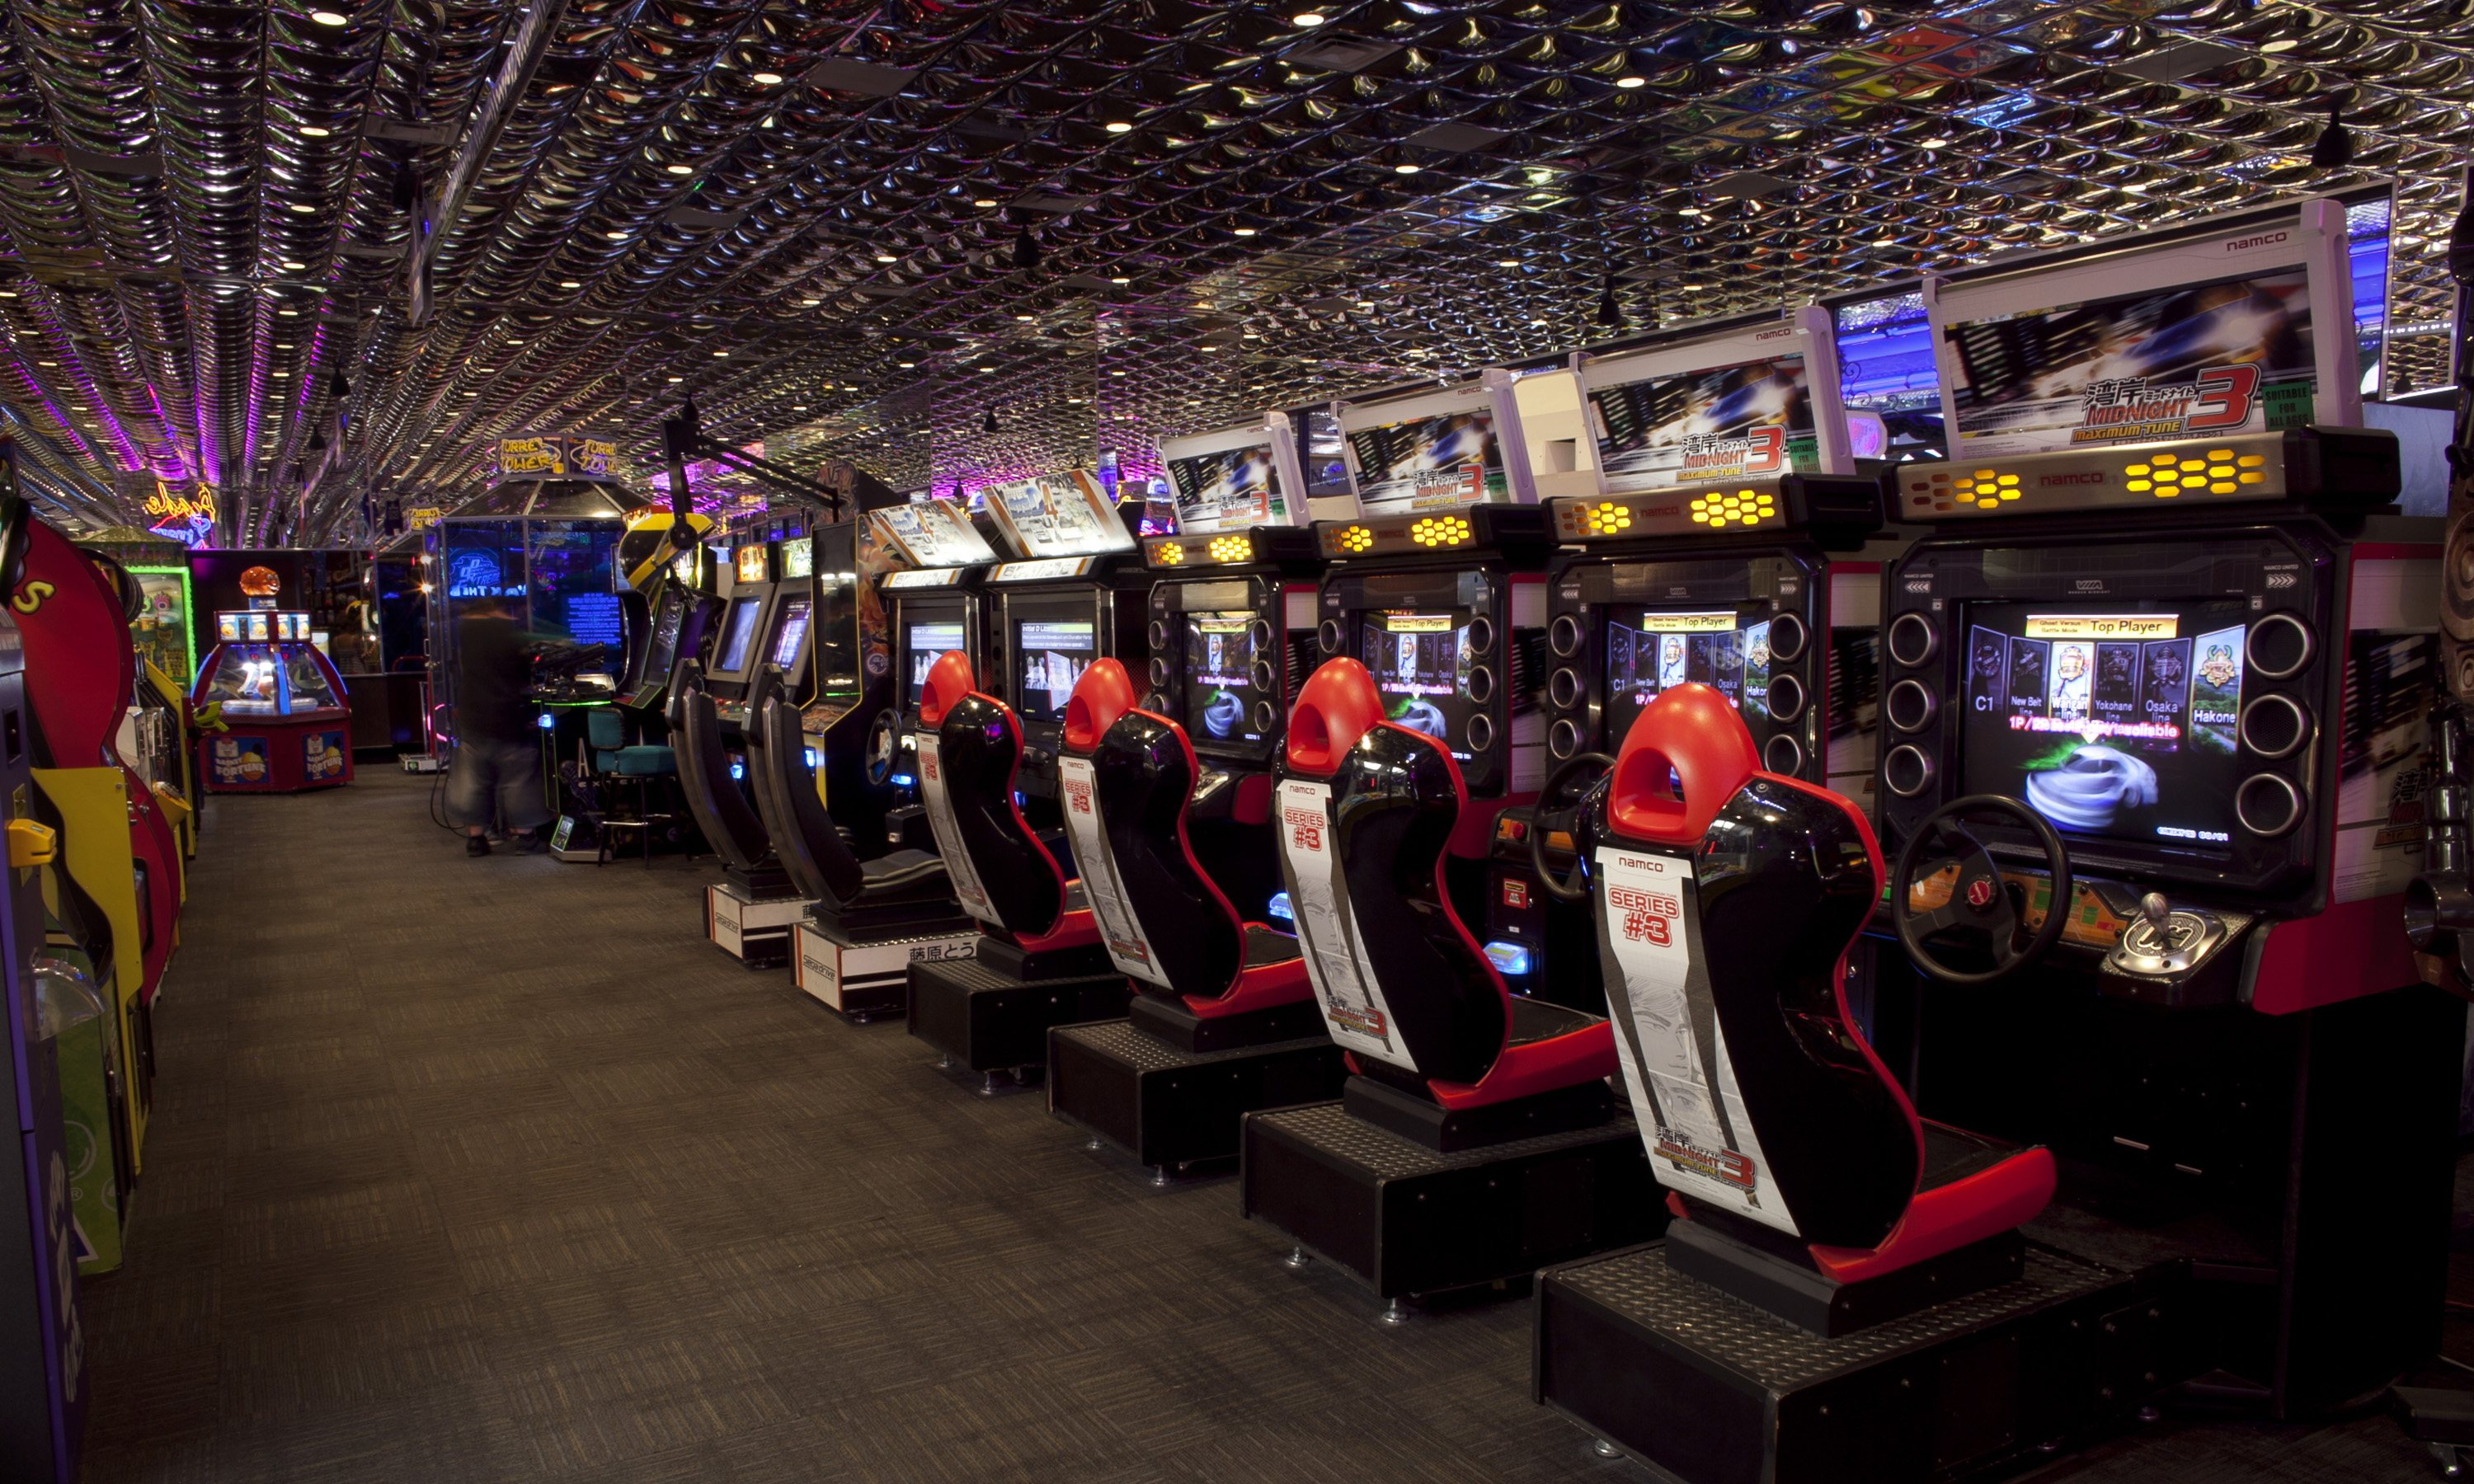 Arcades in North Korea Arent Quite What Youd Expect